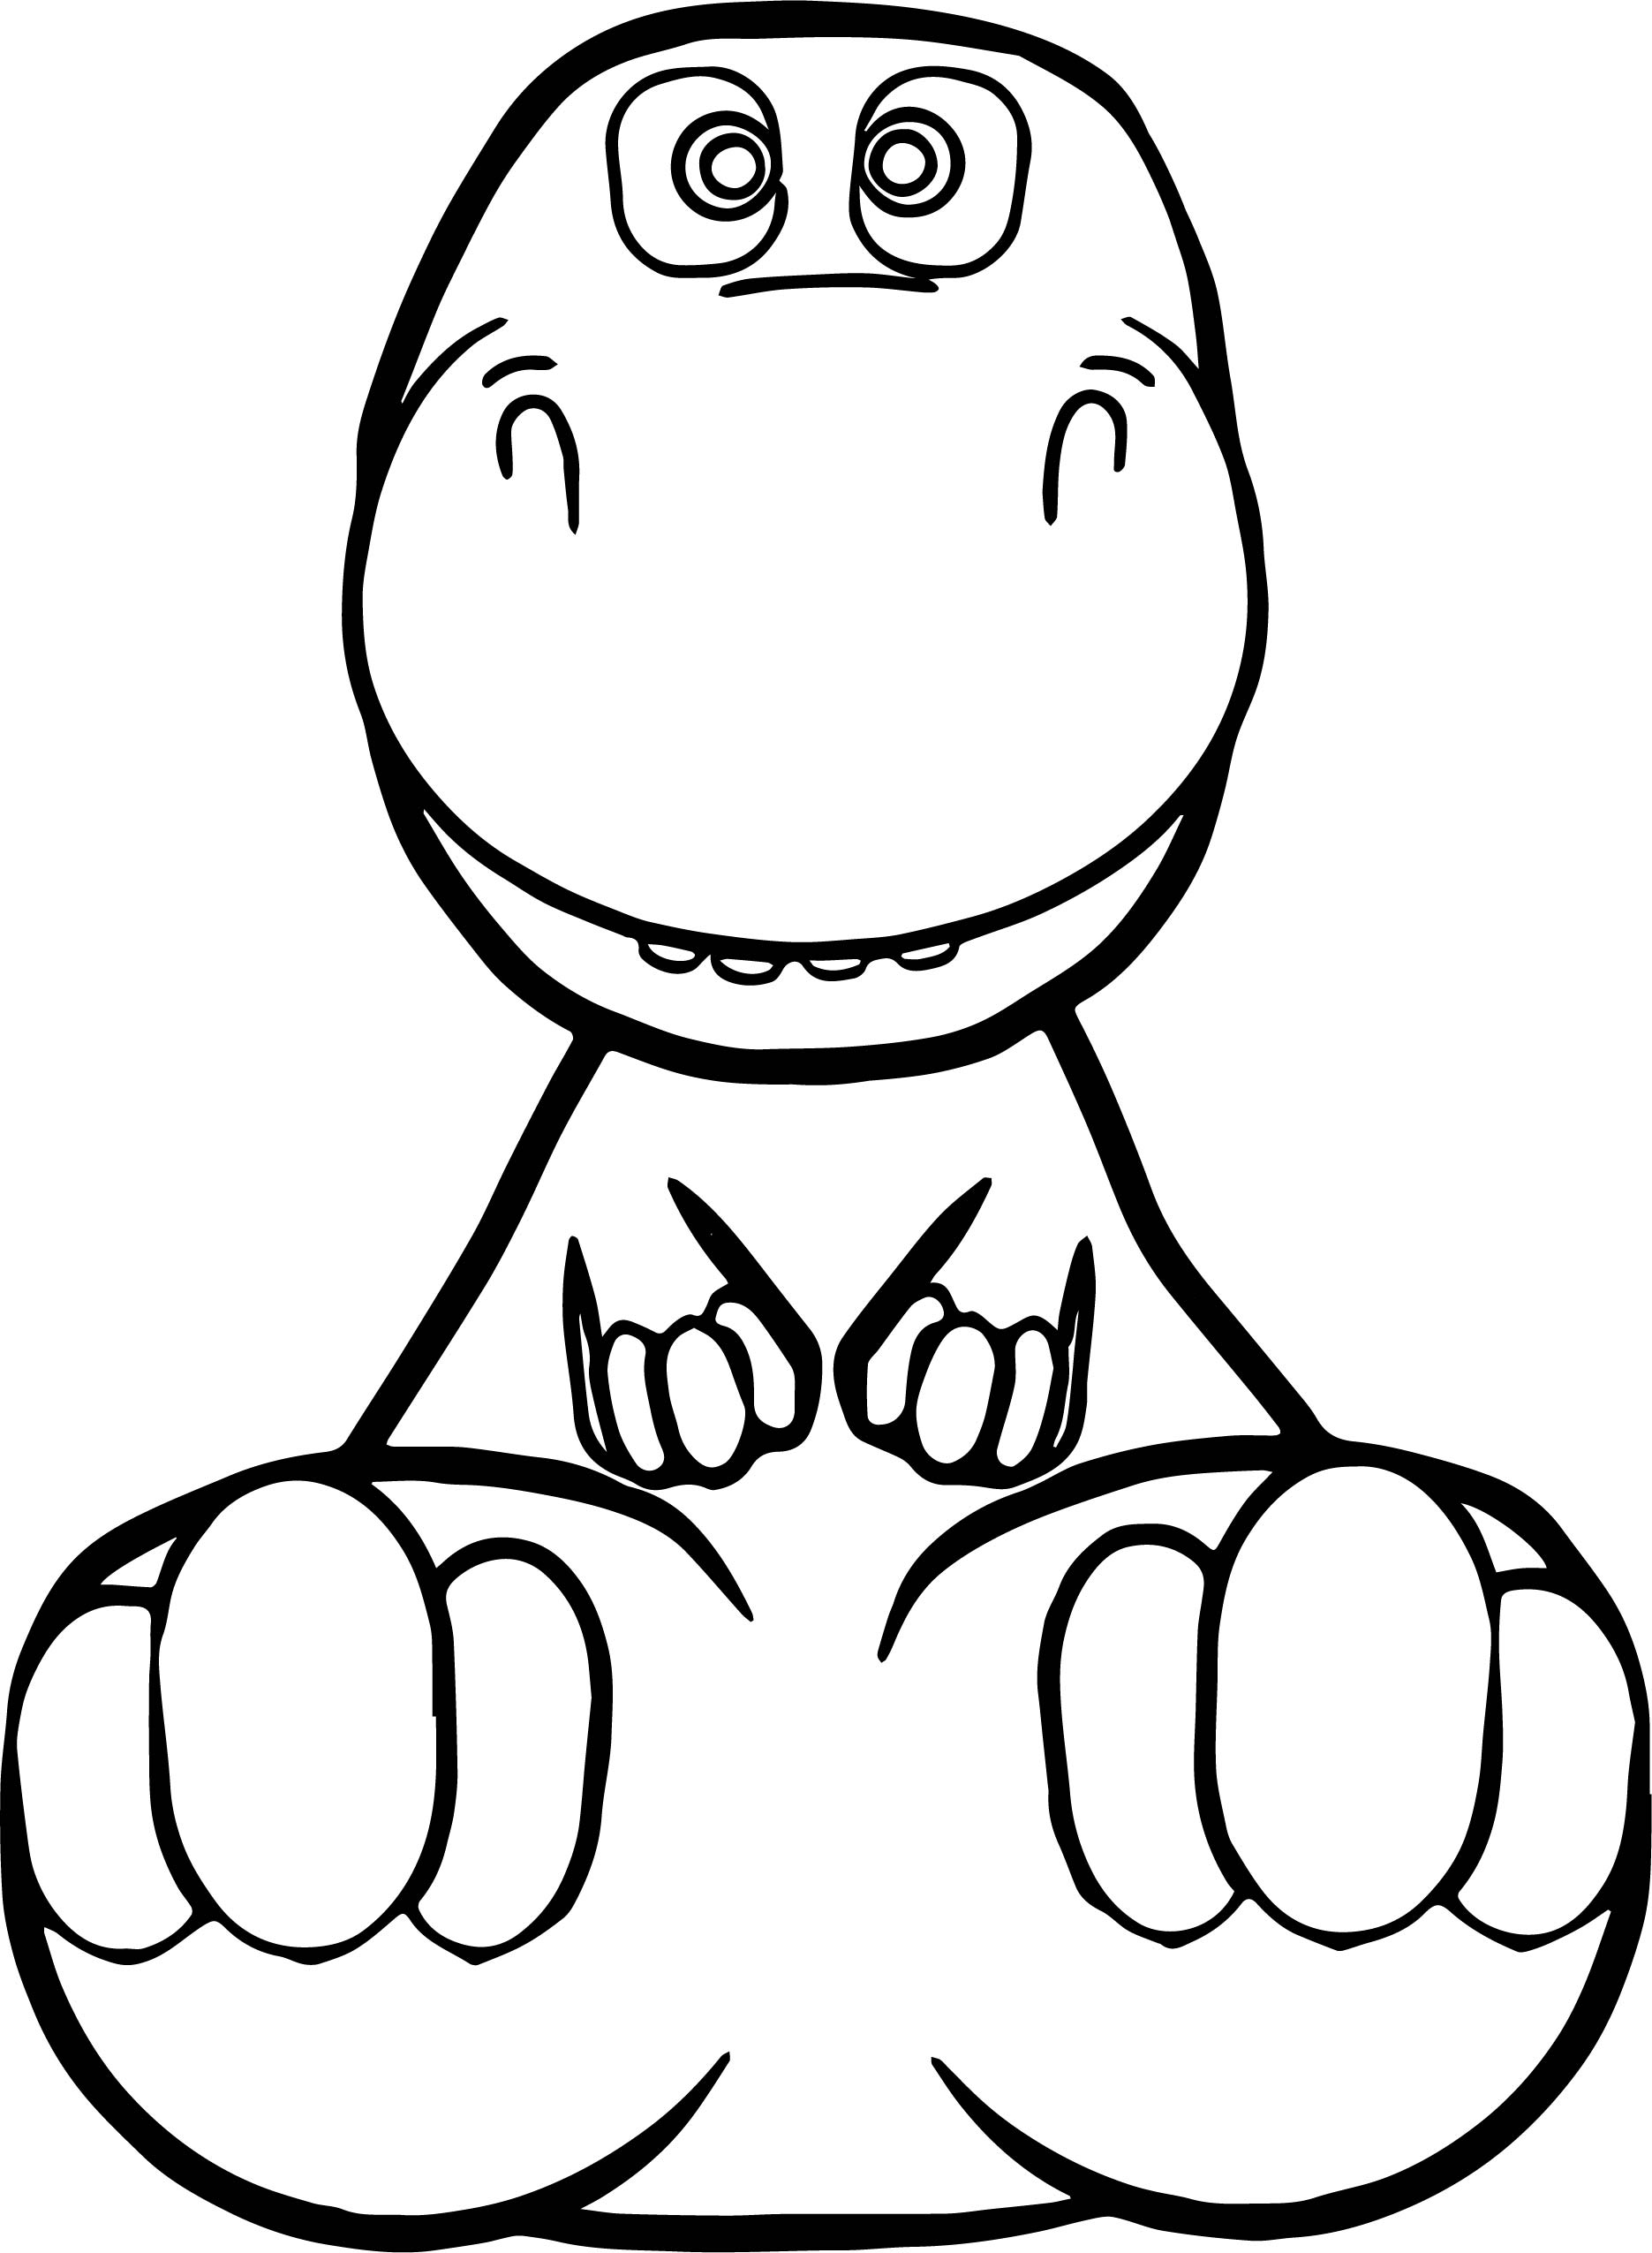 Baby Dinosaur Coloring Pages | Free download on ClipArtMag